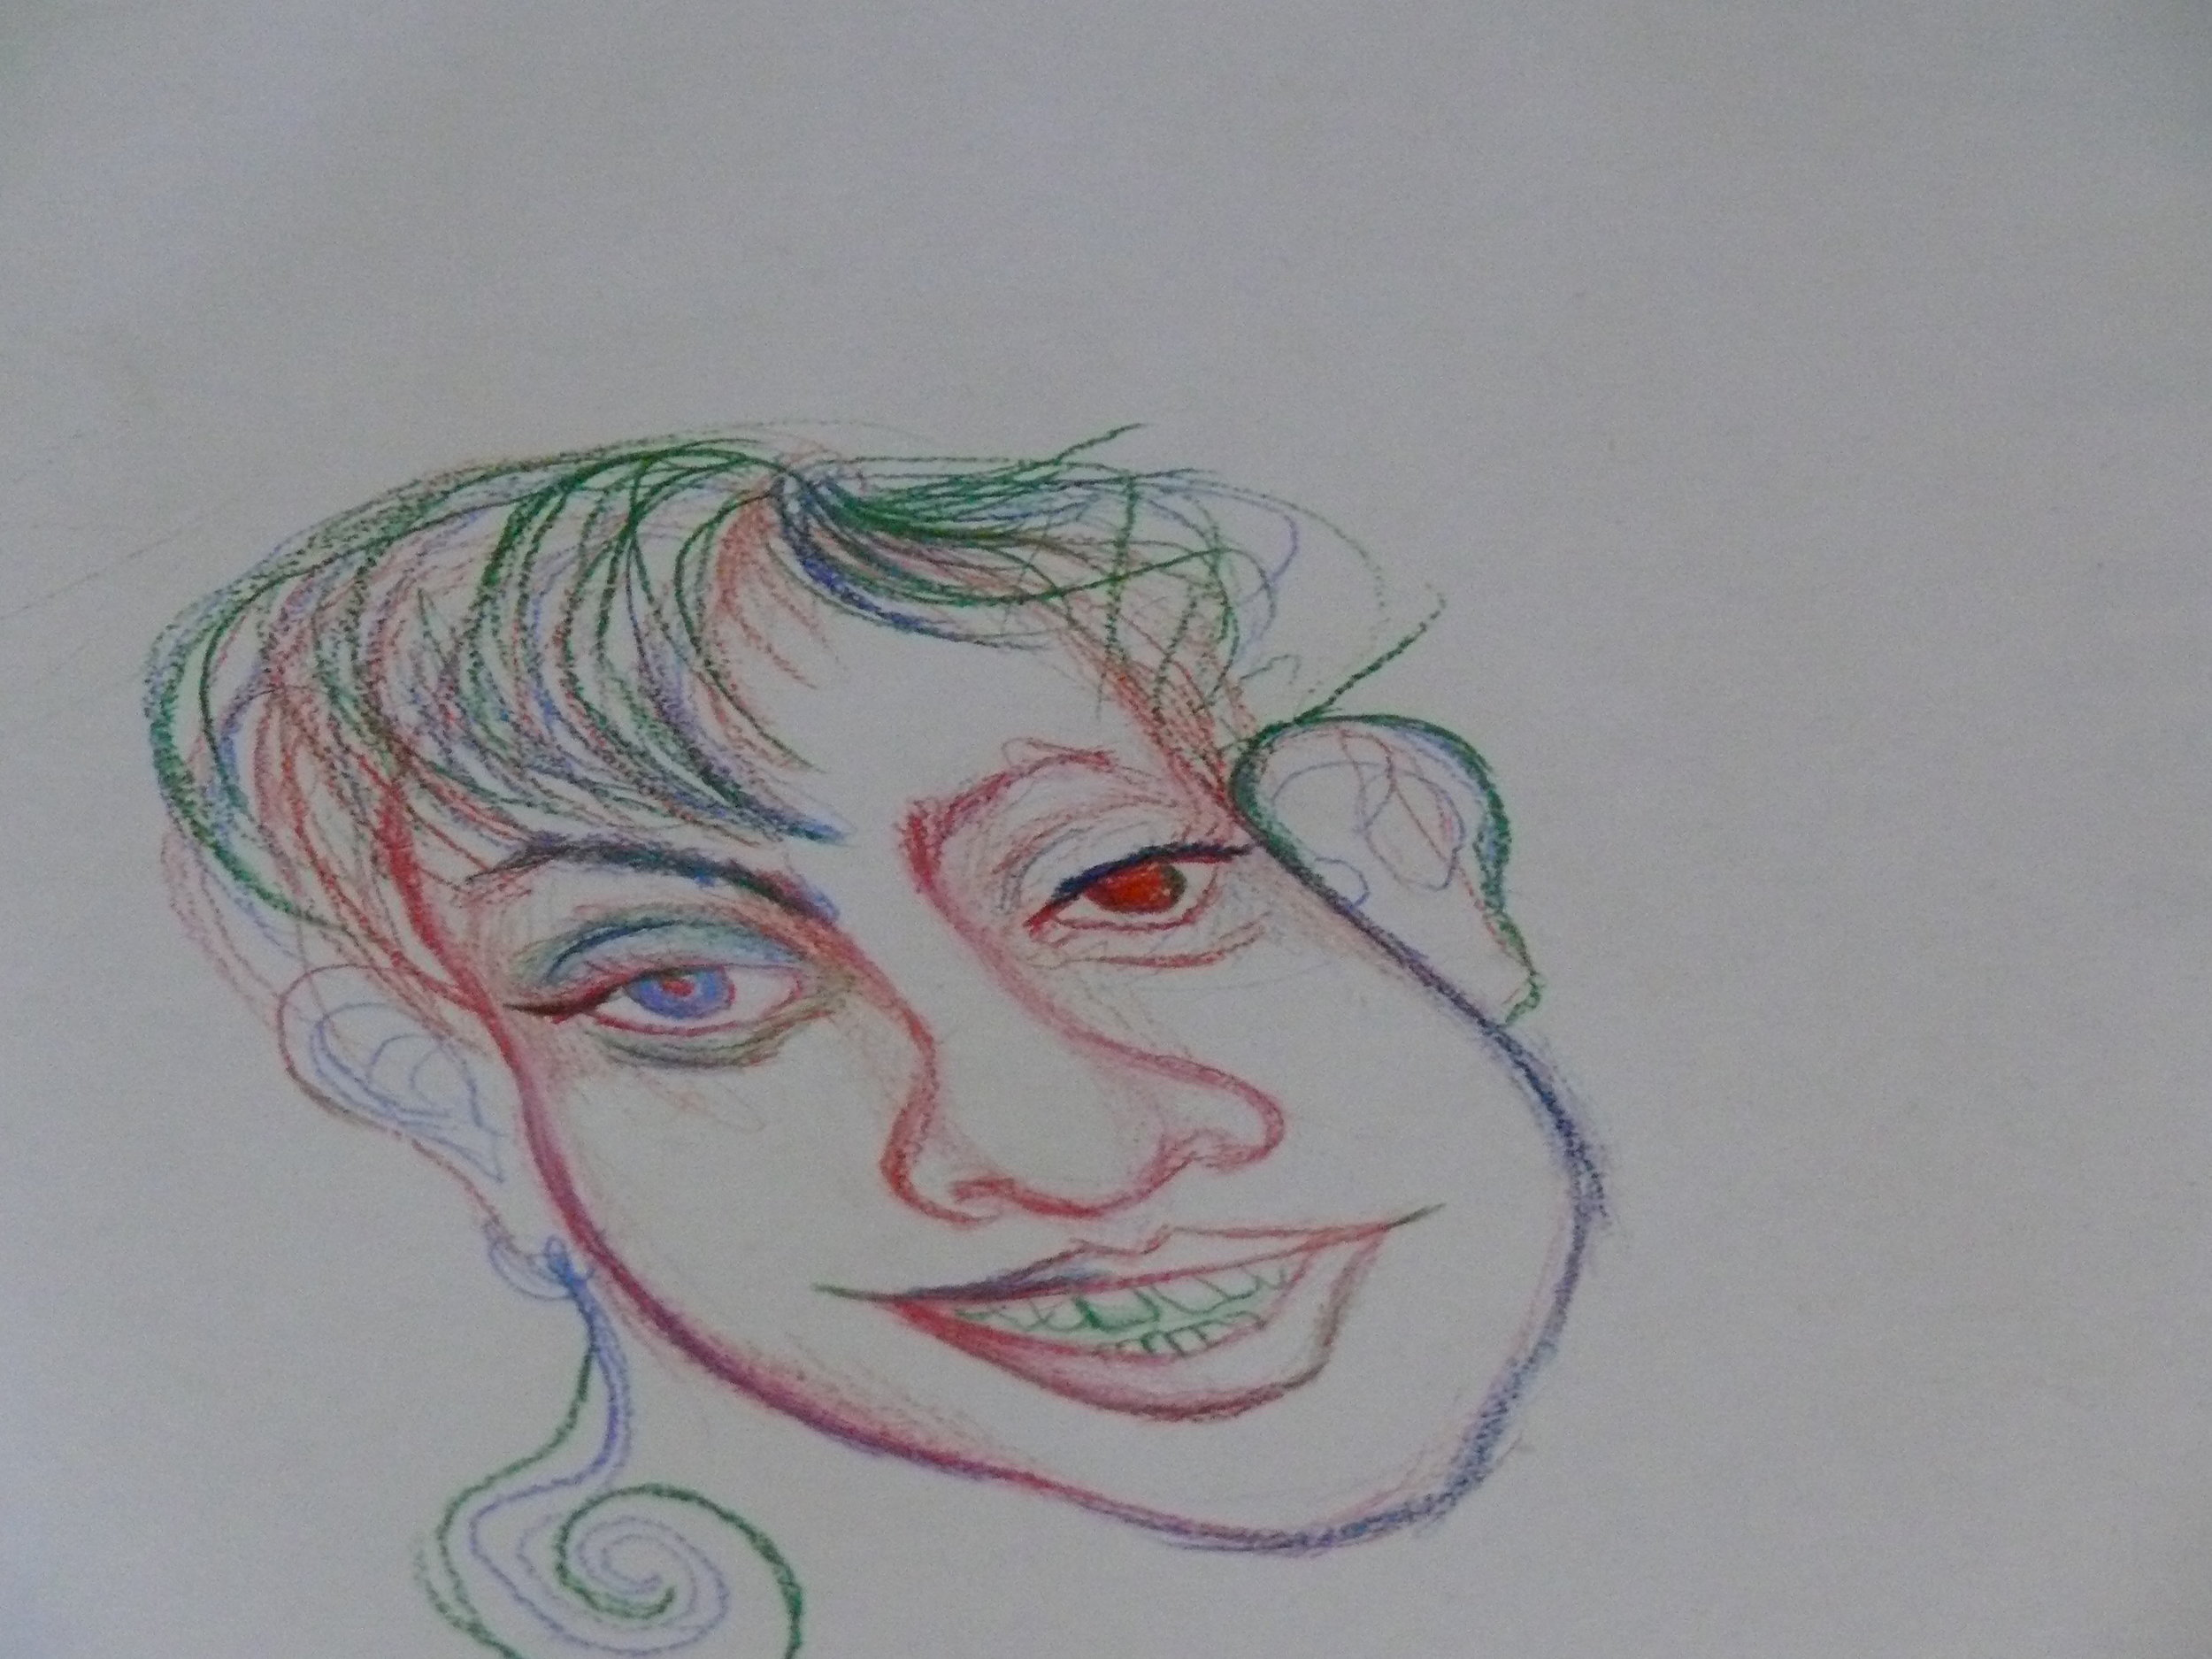 Name of artist unknown for this sketch made by someone who formerly hung out at Hope Sanctuary.